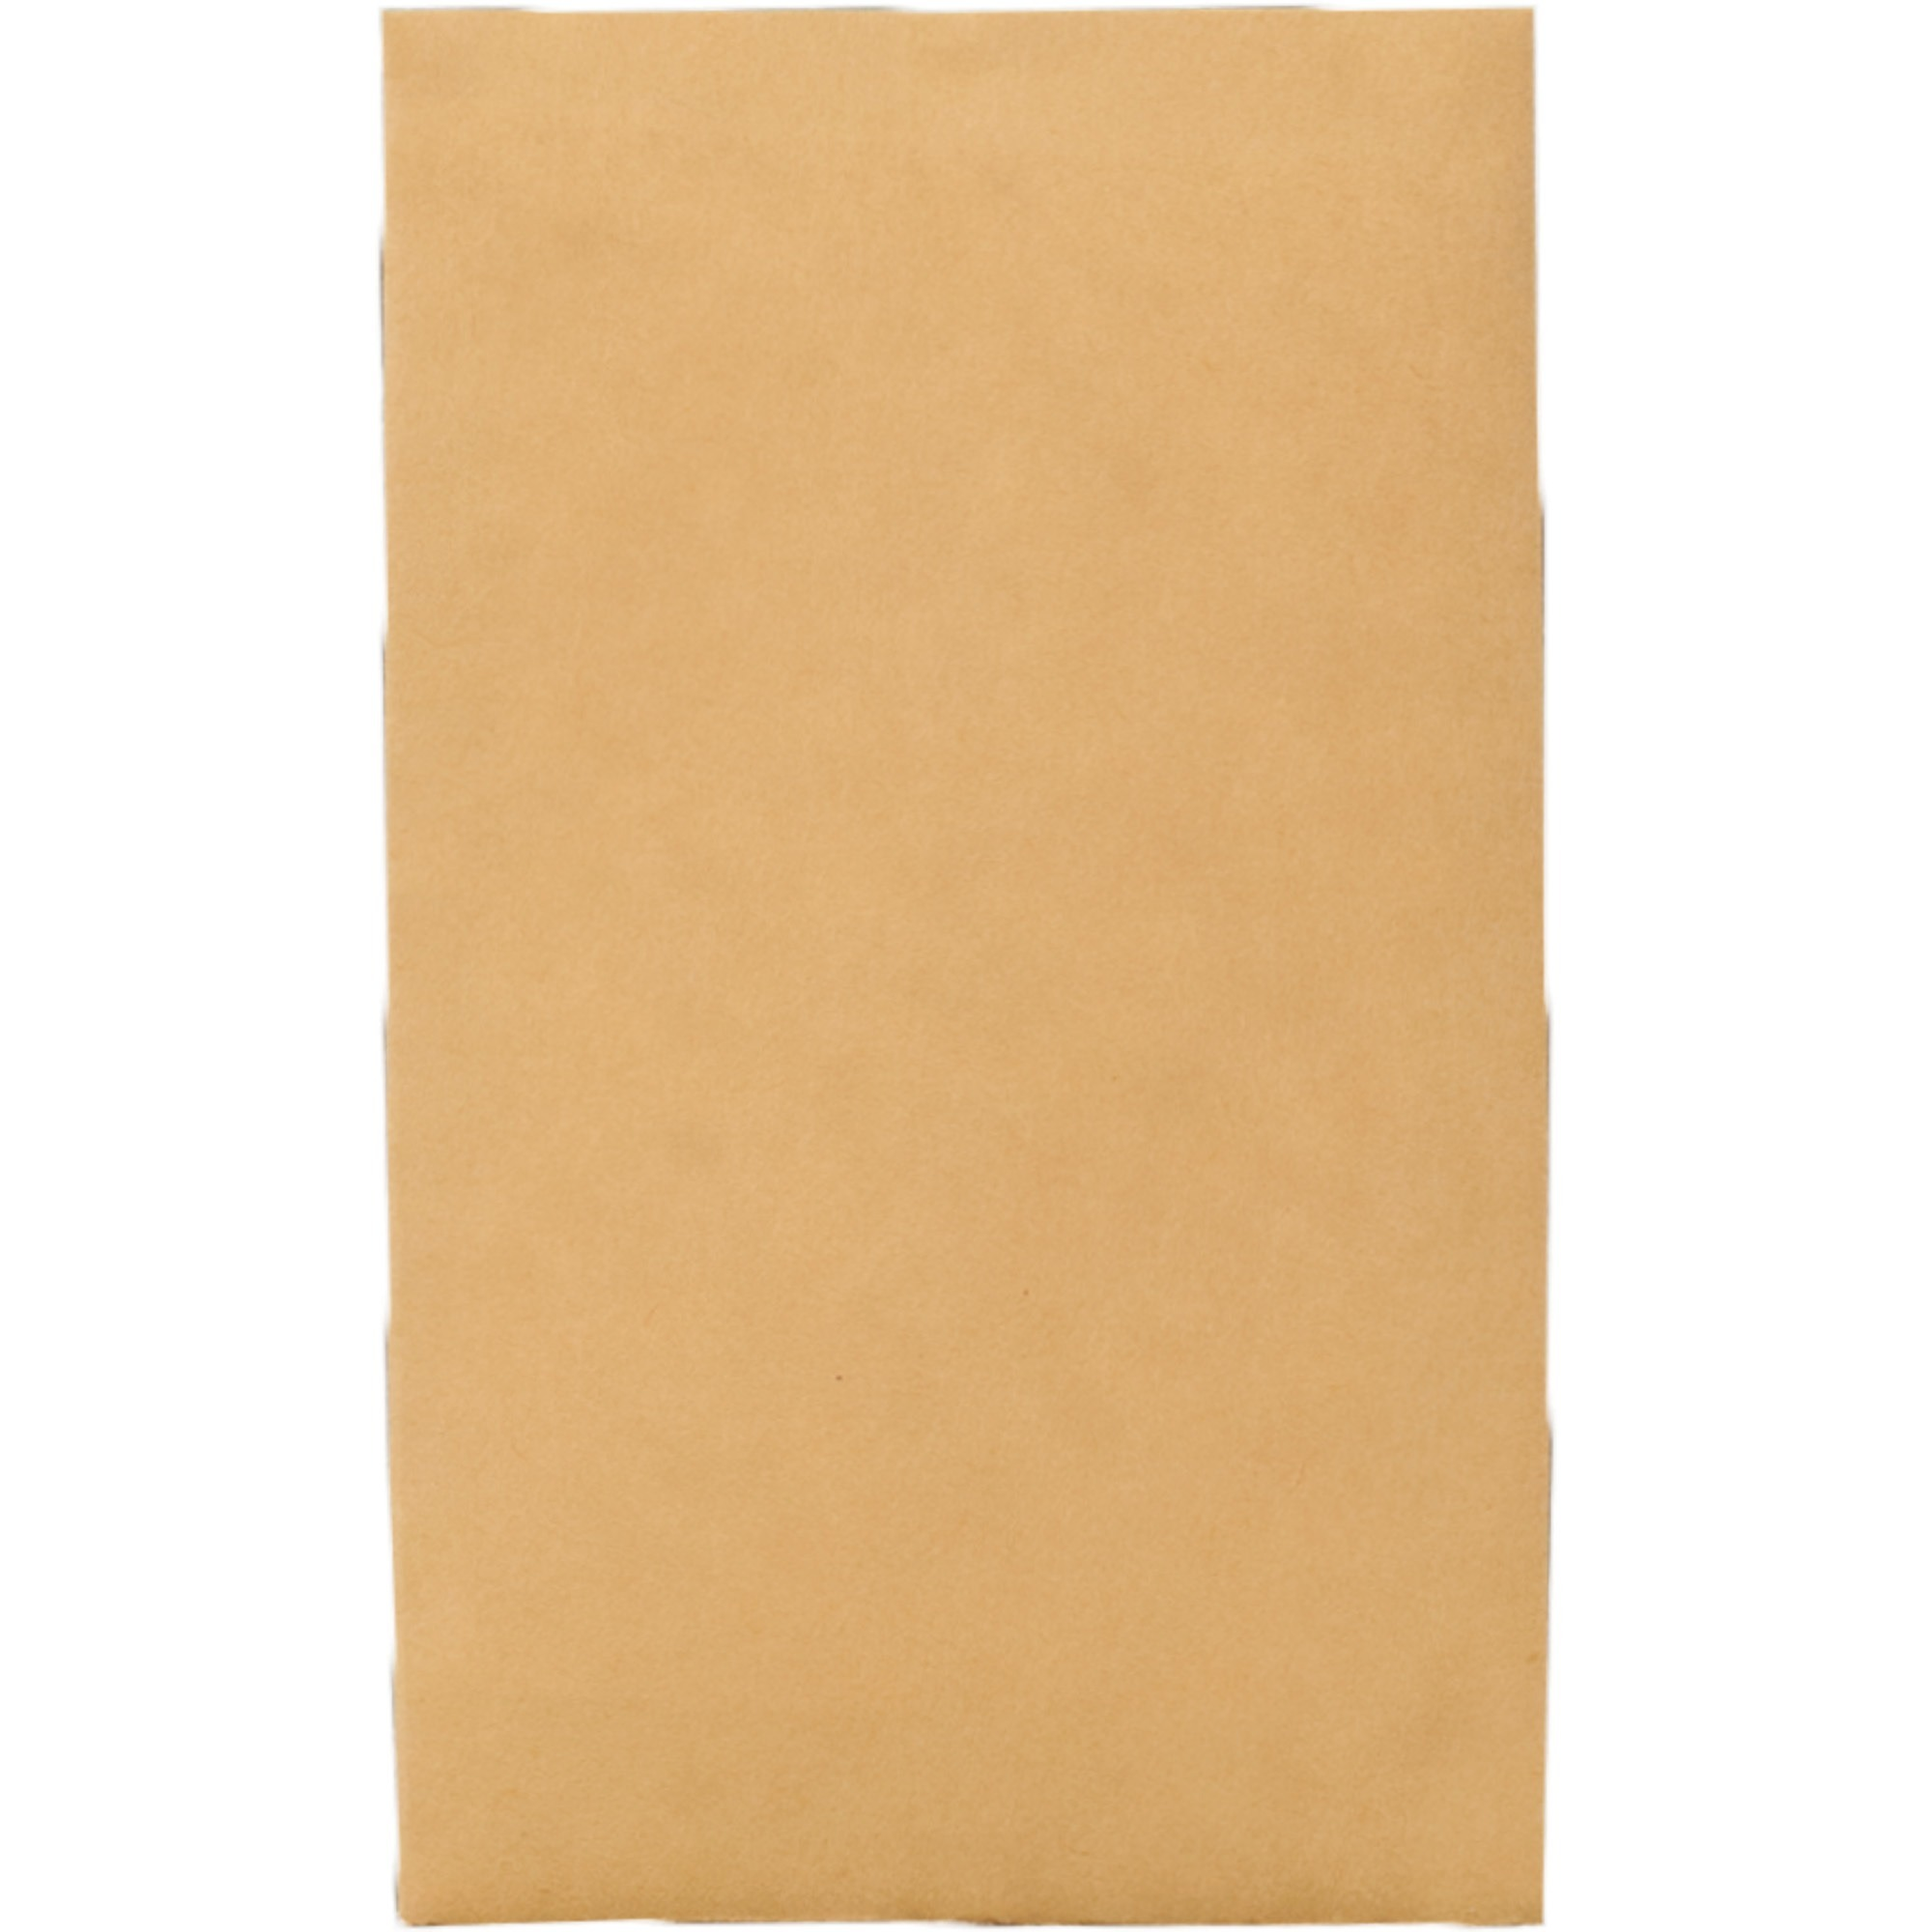 Quality Park Coin/Small Parts Envelope